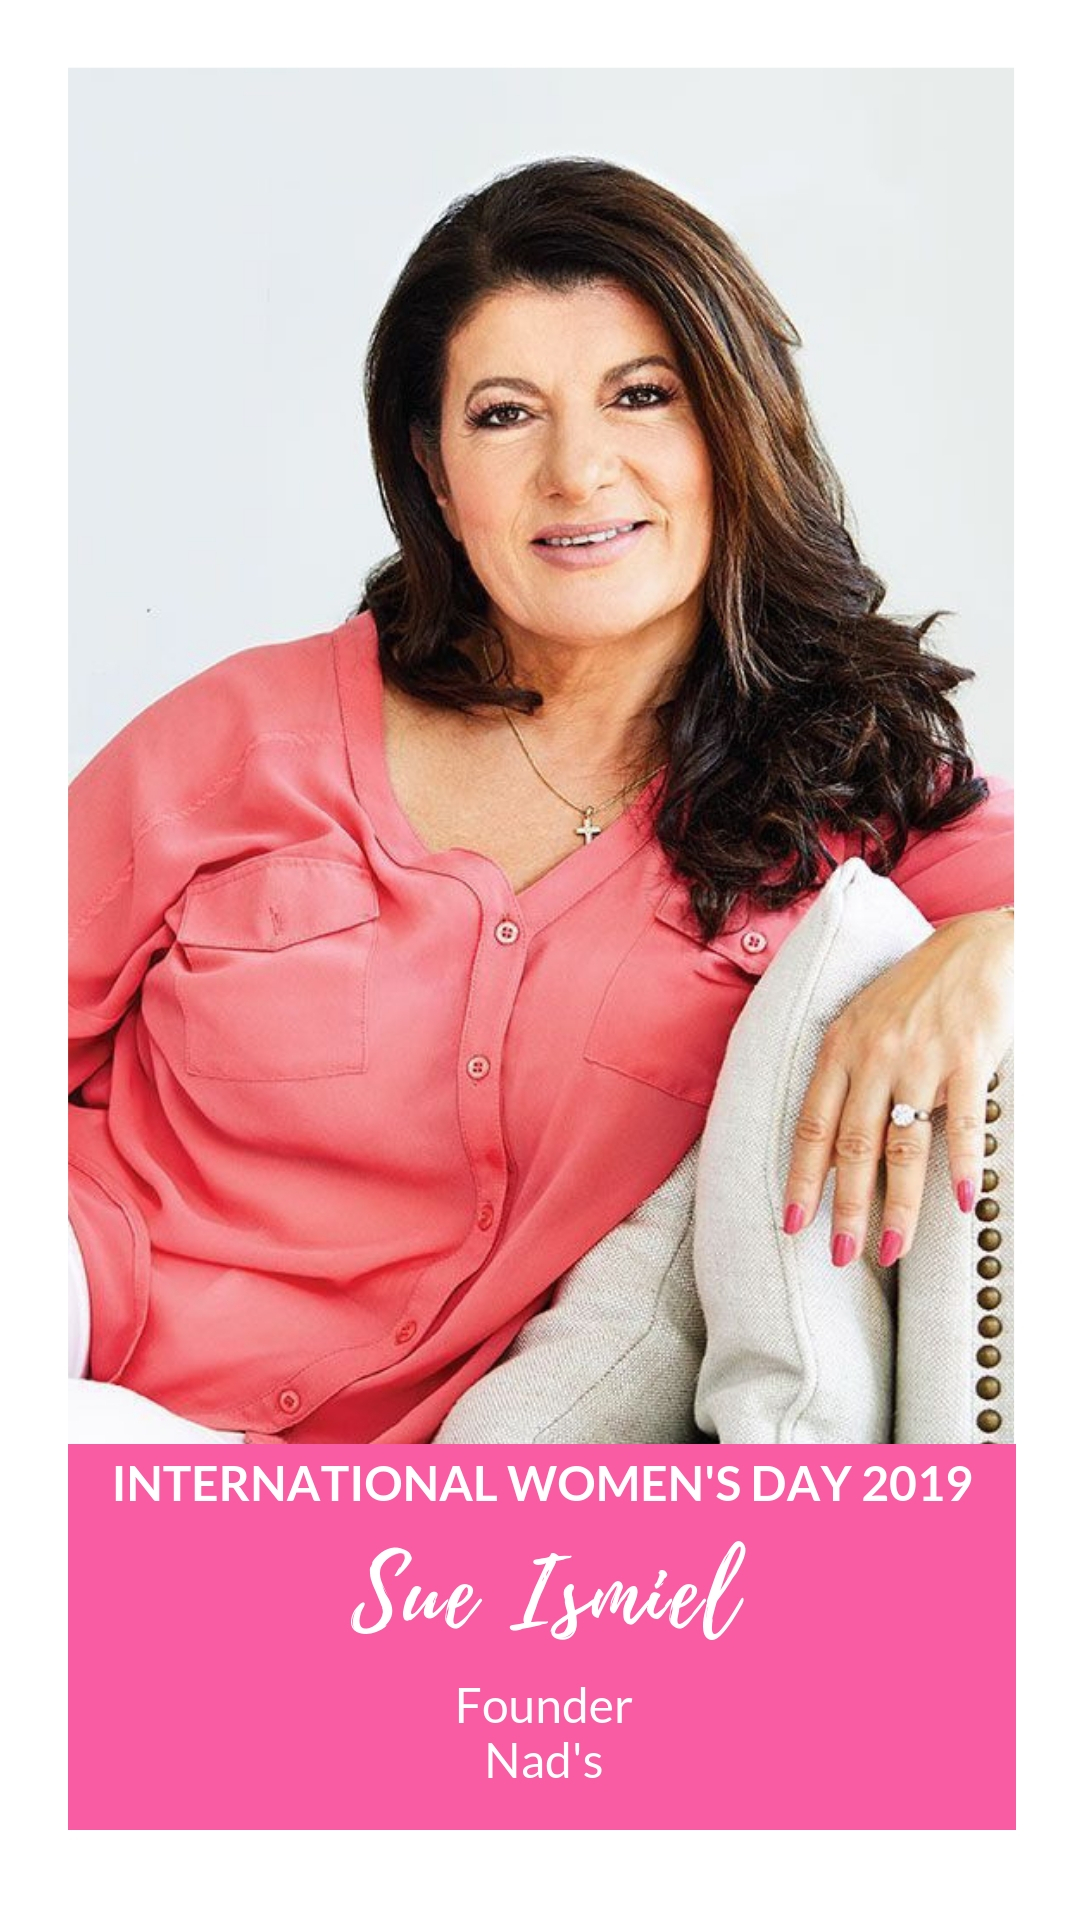 International Women's Day - Sue Ismiel